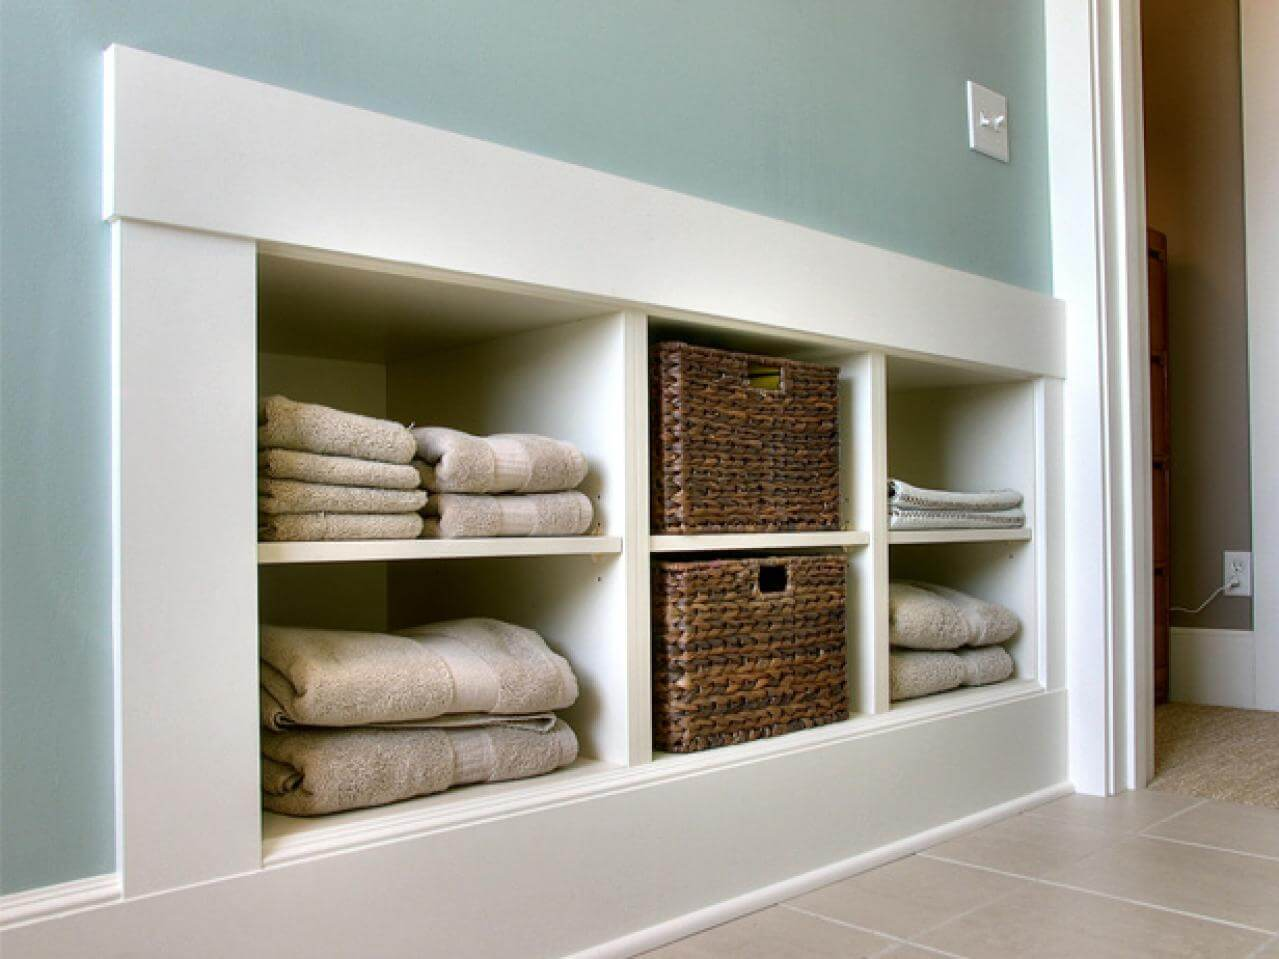 Built-ins and Baskets for Pretty Bathroom Storage